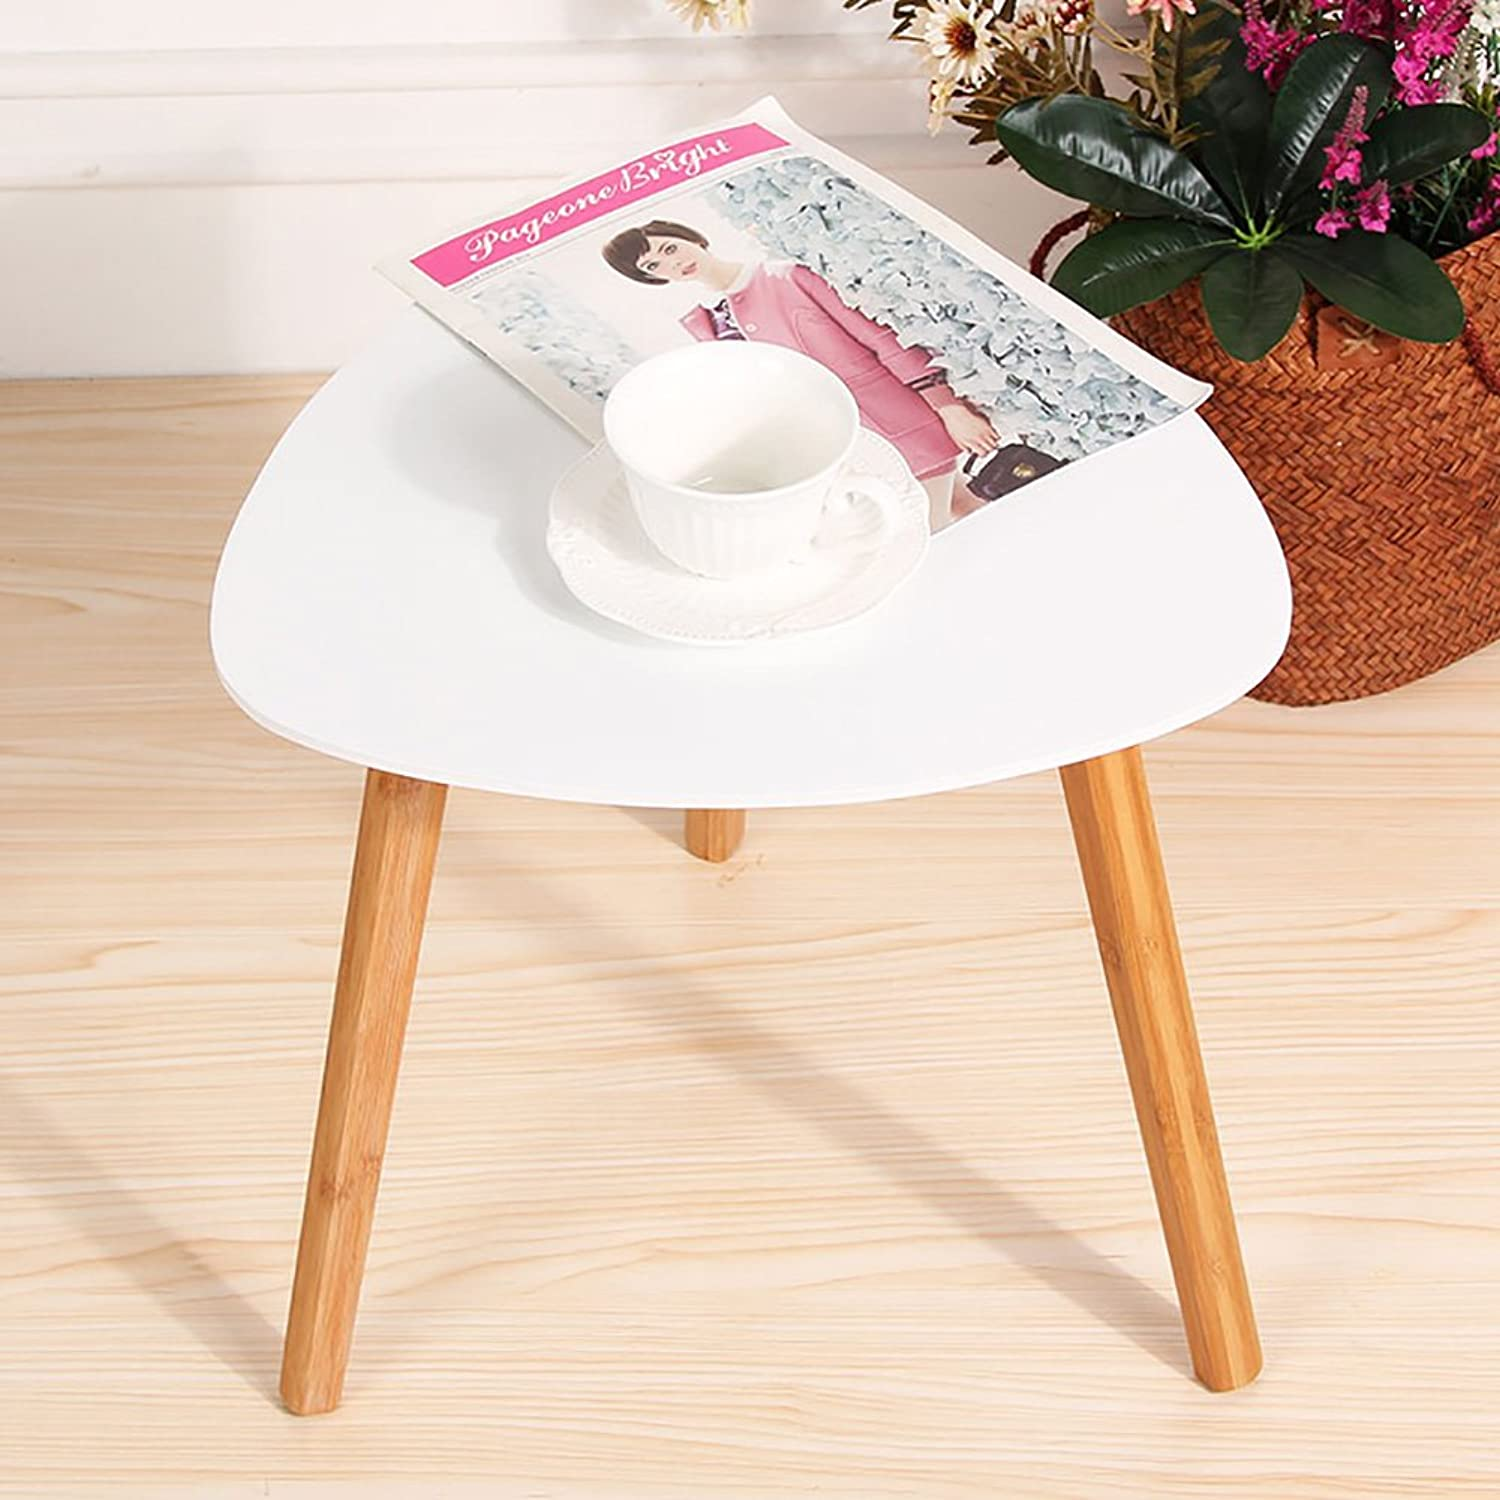 Solid Wood Waterproof Side Table, Triangle Living Room Sofa Table Coffee Table Bedroom Night Table Vintage Telephone Table-White 40X40cm